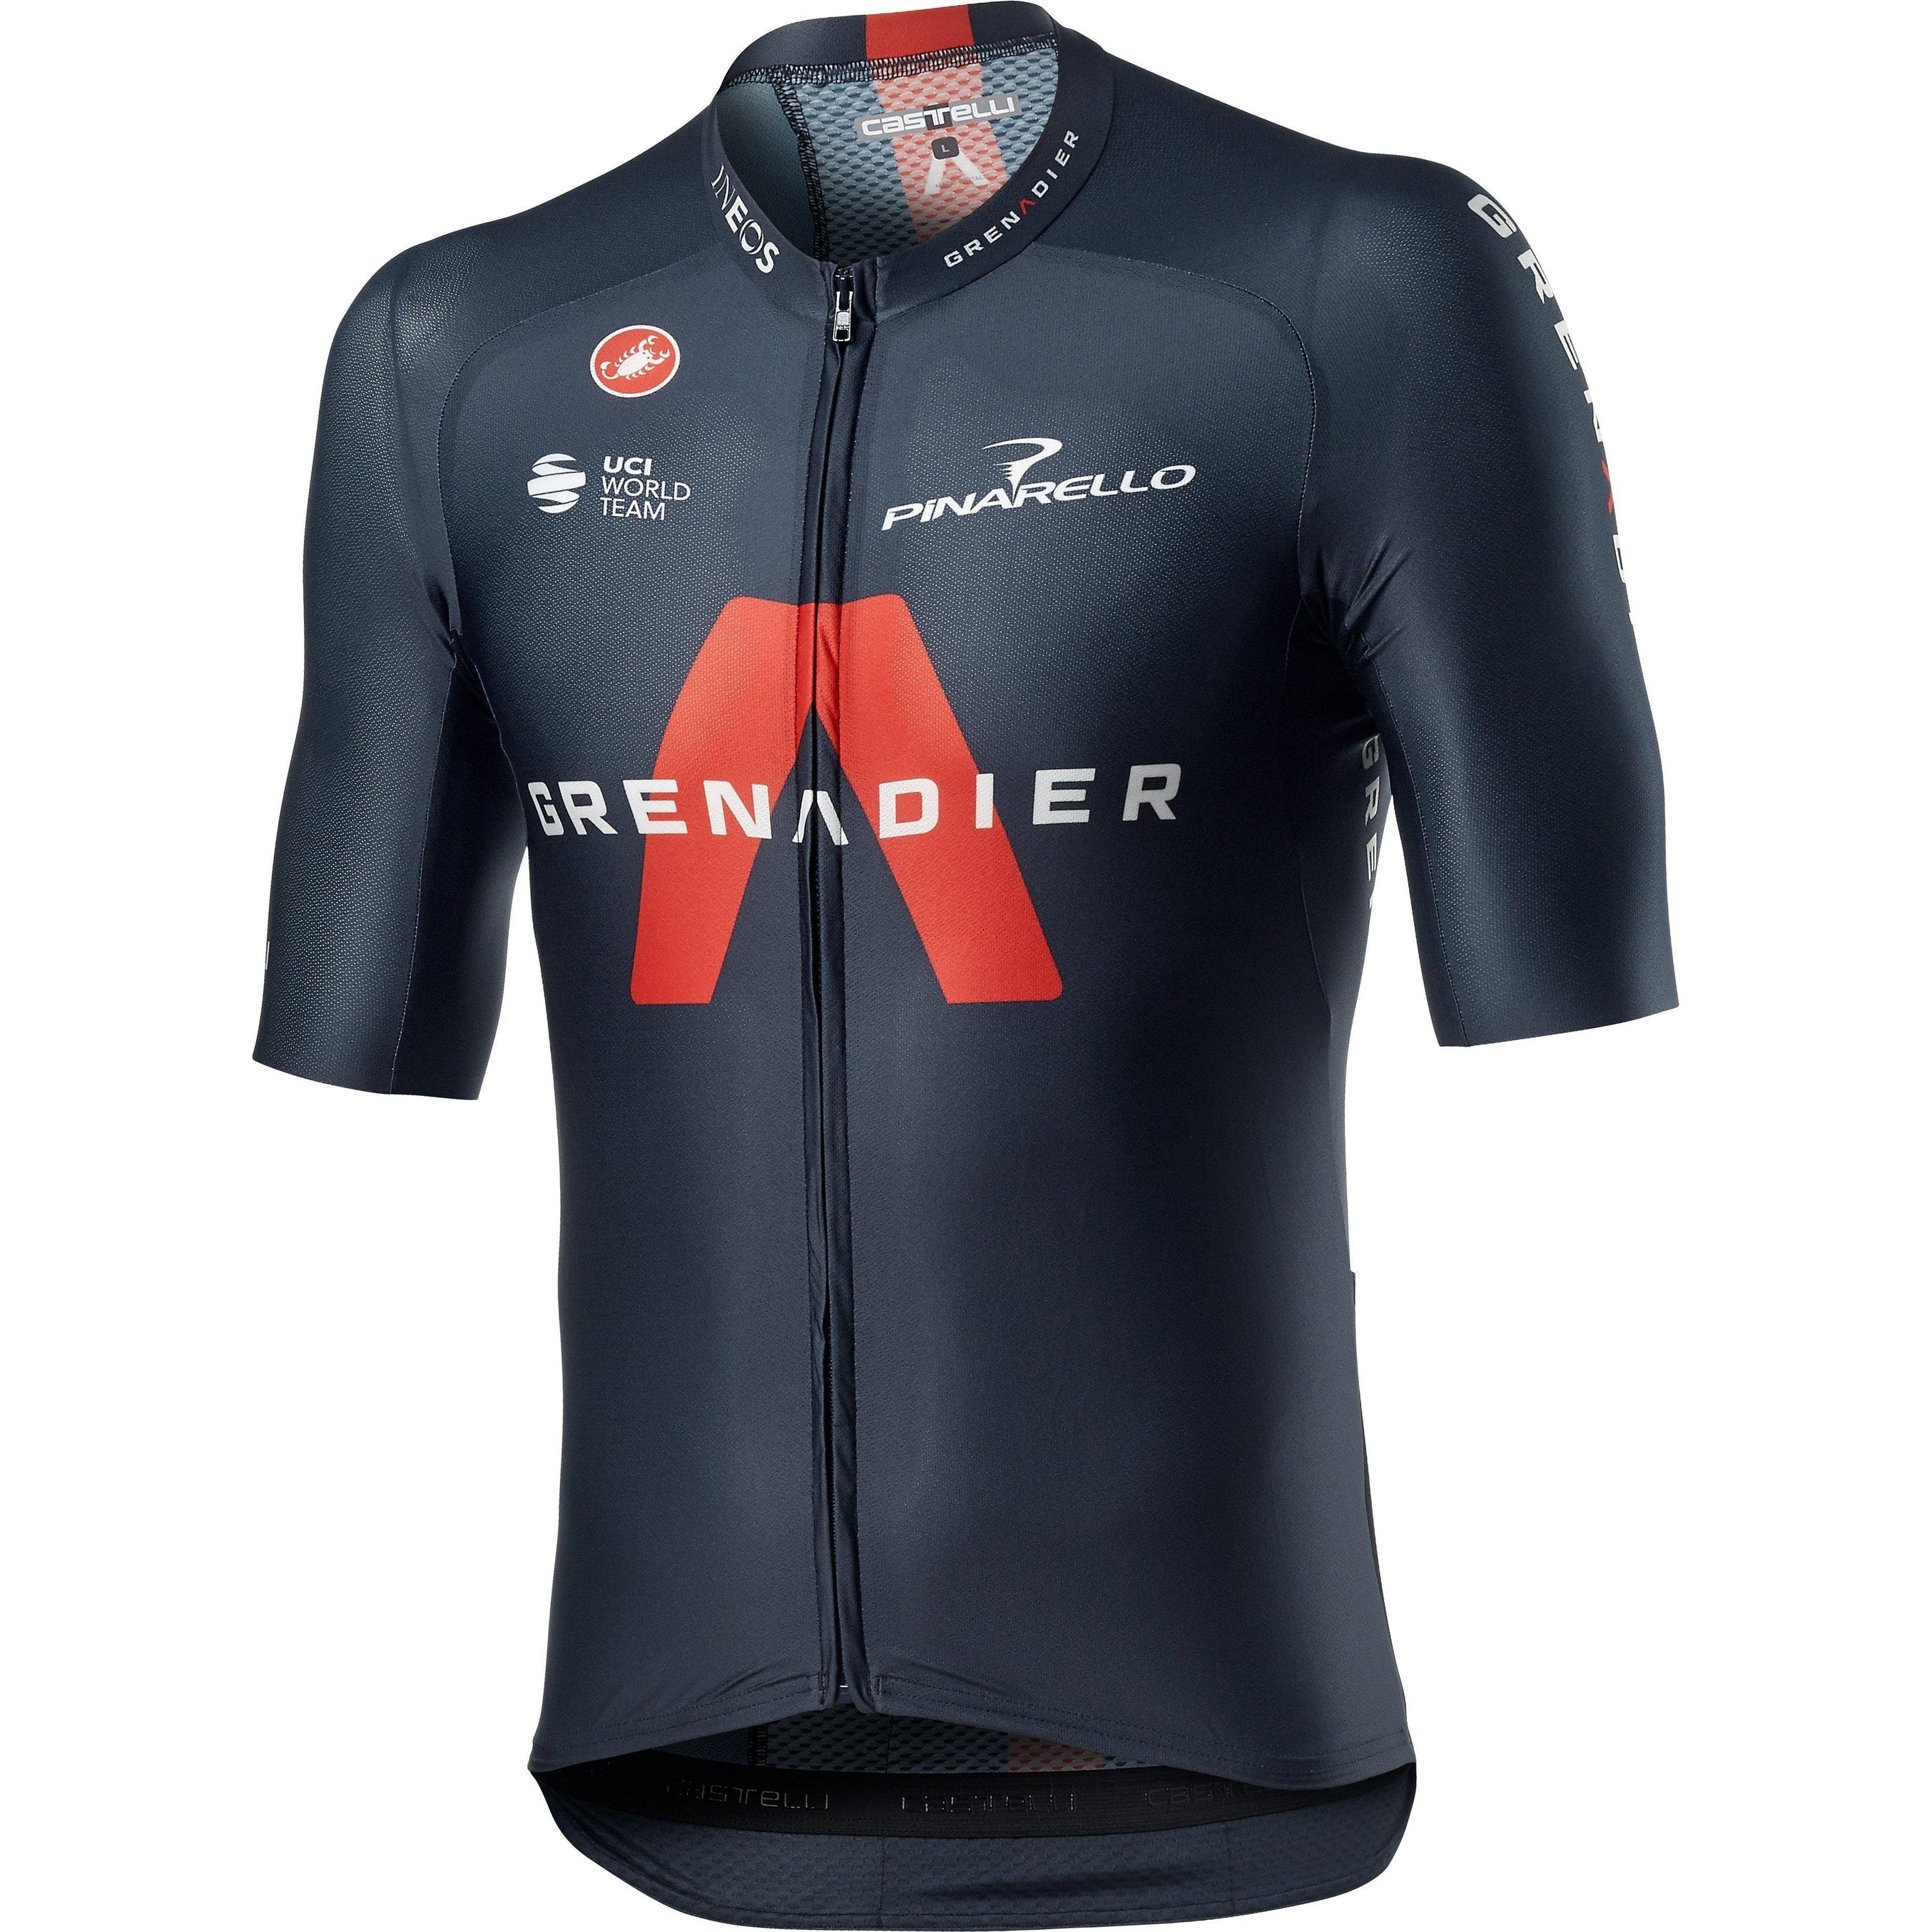 Castelli-Castelli INEOS Grenadiers Aero Race 6.1 Jersey-Savile Blue-XS-CS40310004141-saddleback-elite-performance-cycling